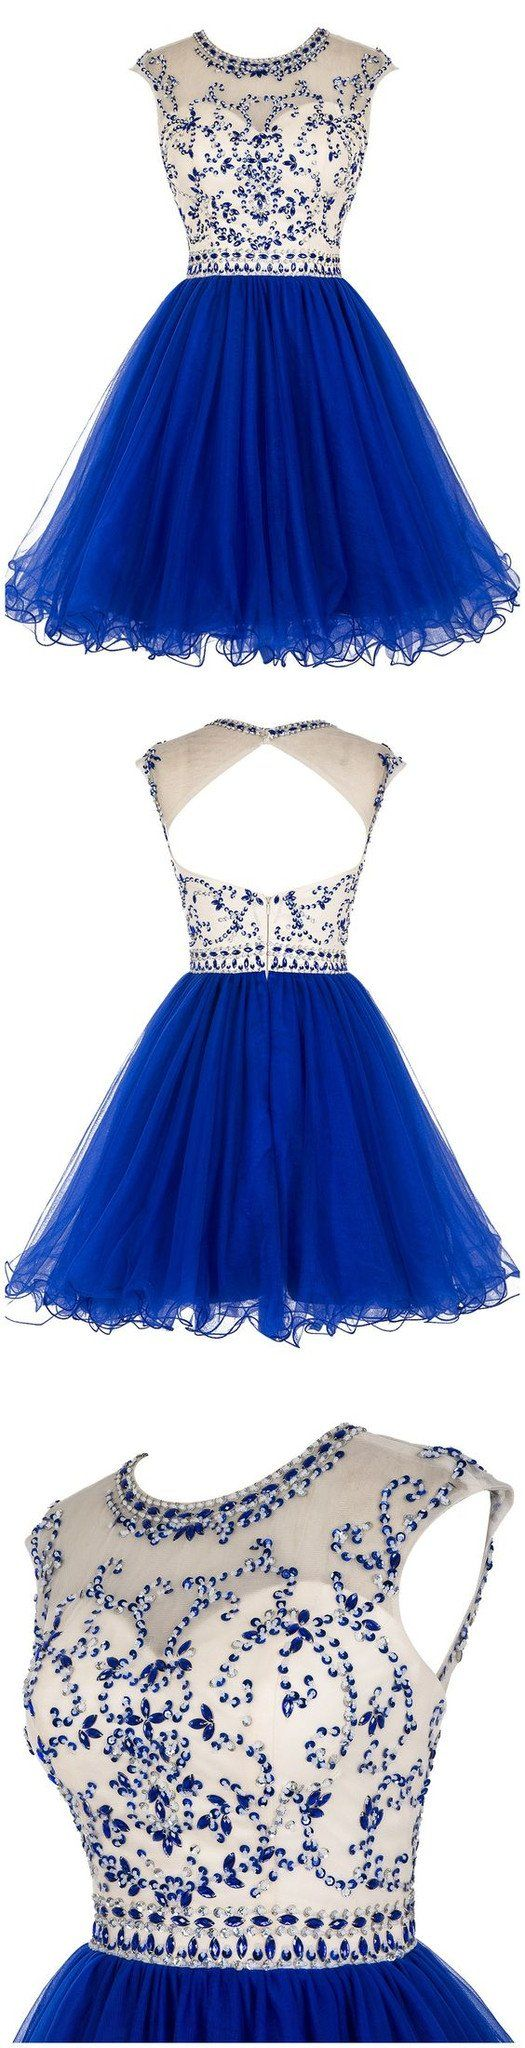 Sexy open back royal blue short tulle homecoming prom dresses